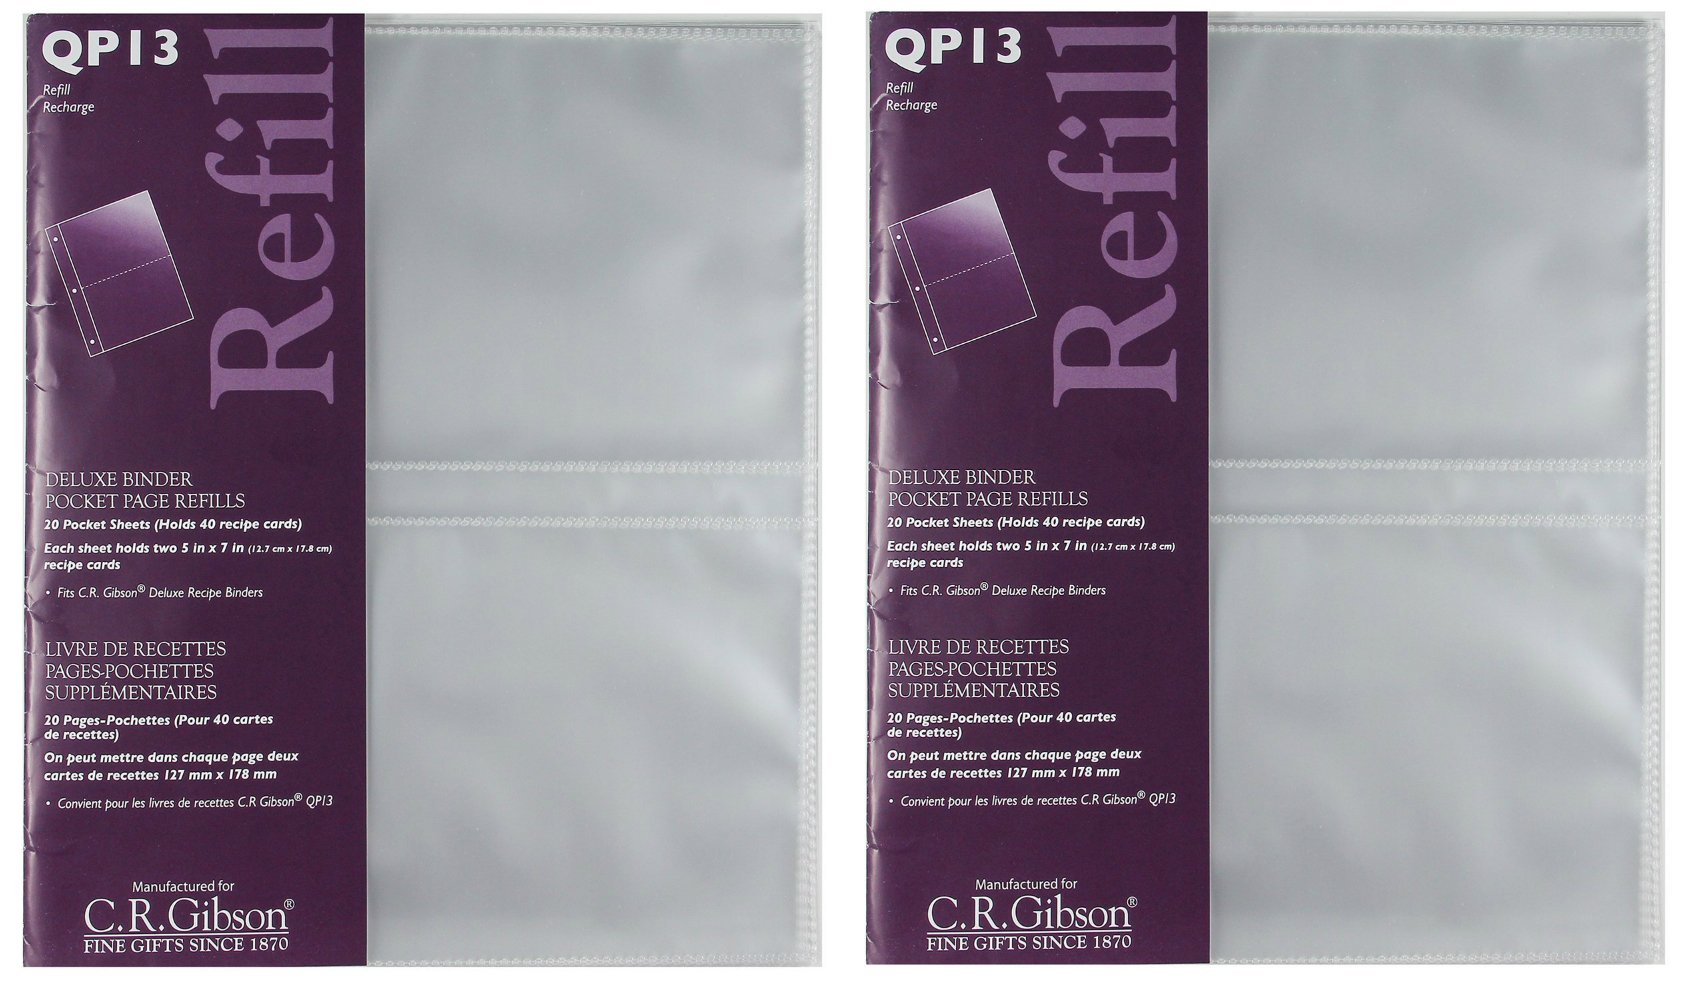 CR Gibson QP-13 Deluxe Binder pocket page refills, 20 pocket sheet (holds 40 recipe cards)(2 pack) by C.R. Gibson